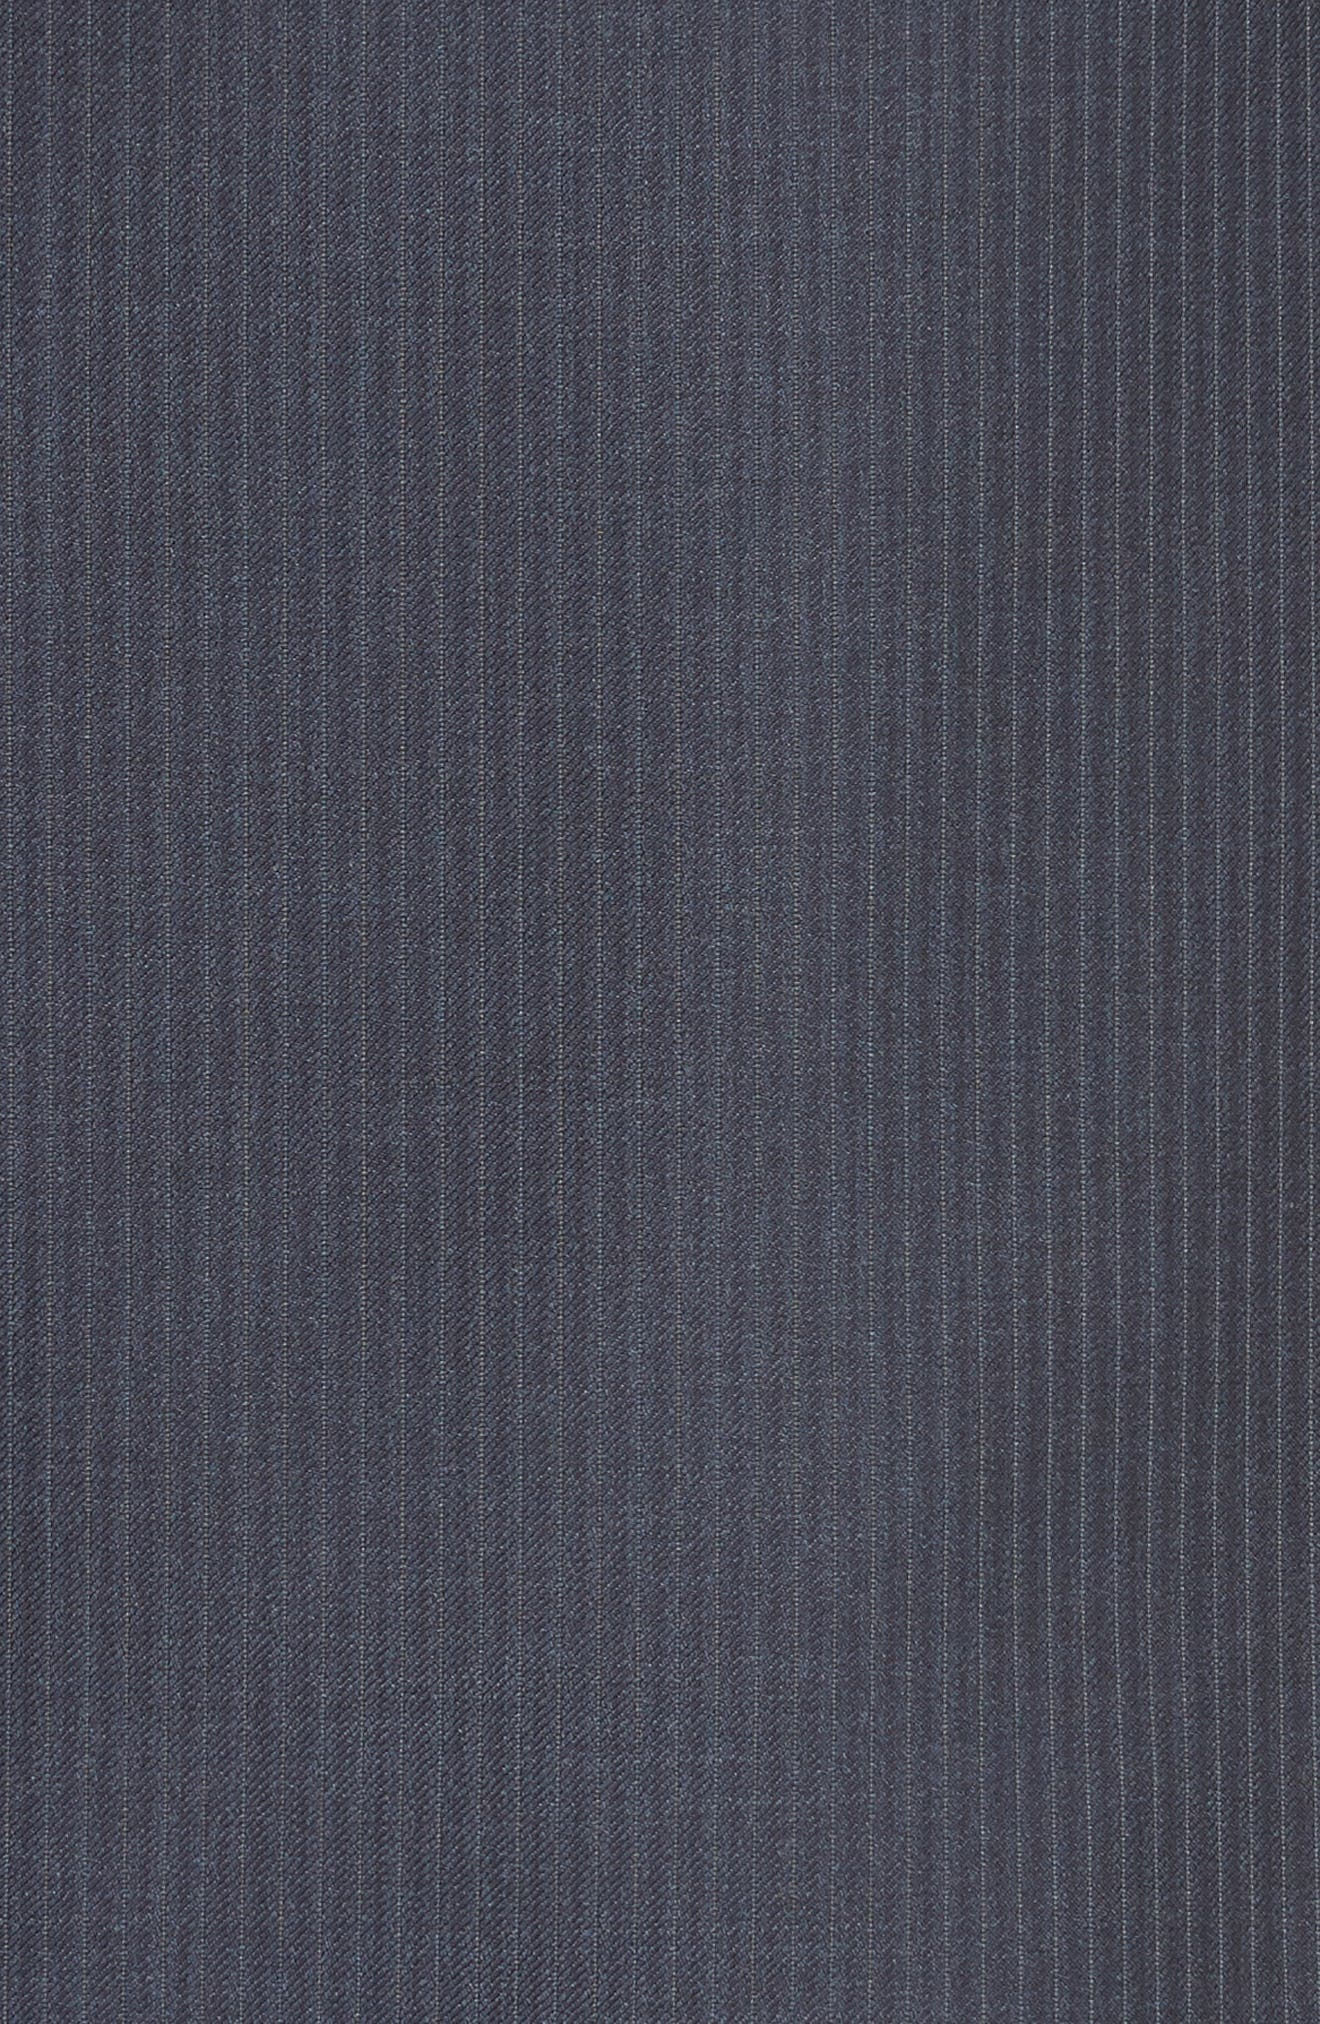 Classic Fit Pinstripe Wool Suit,                             Alternate thumbnail 7, color,                             Navy